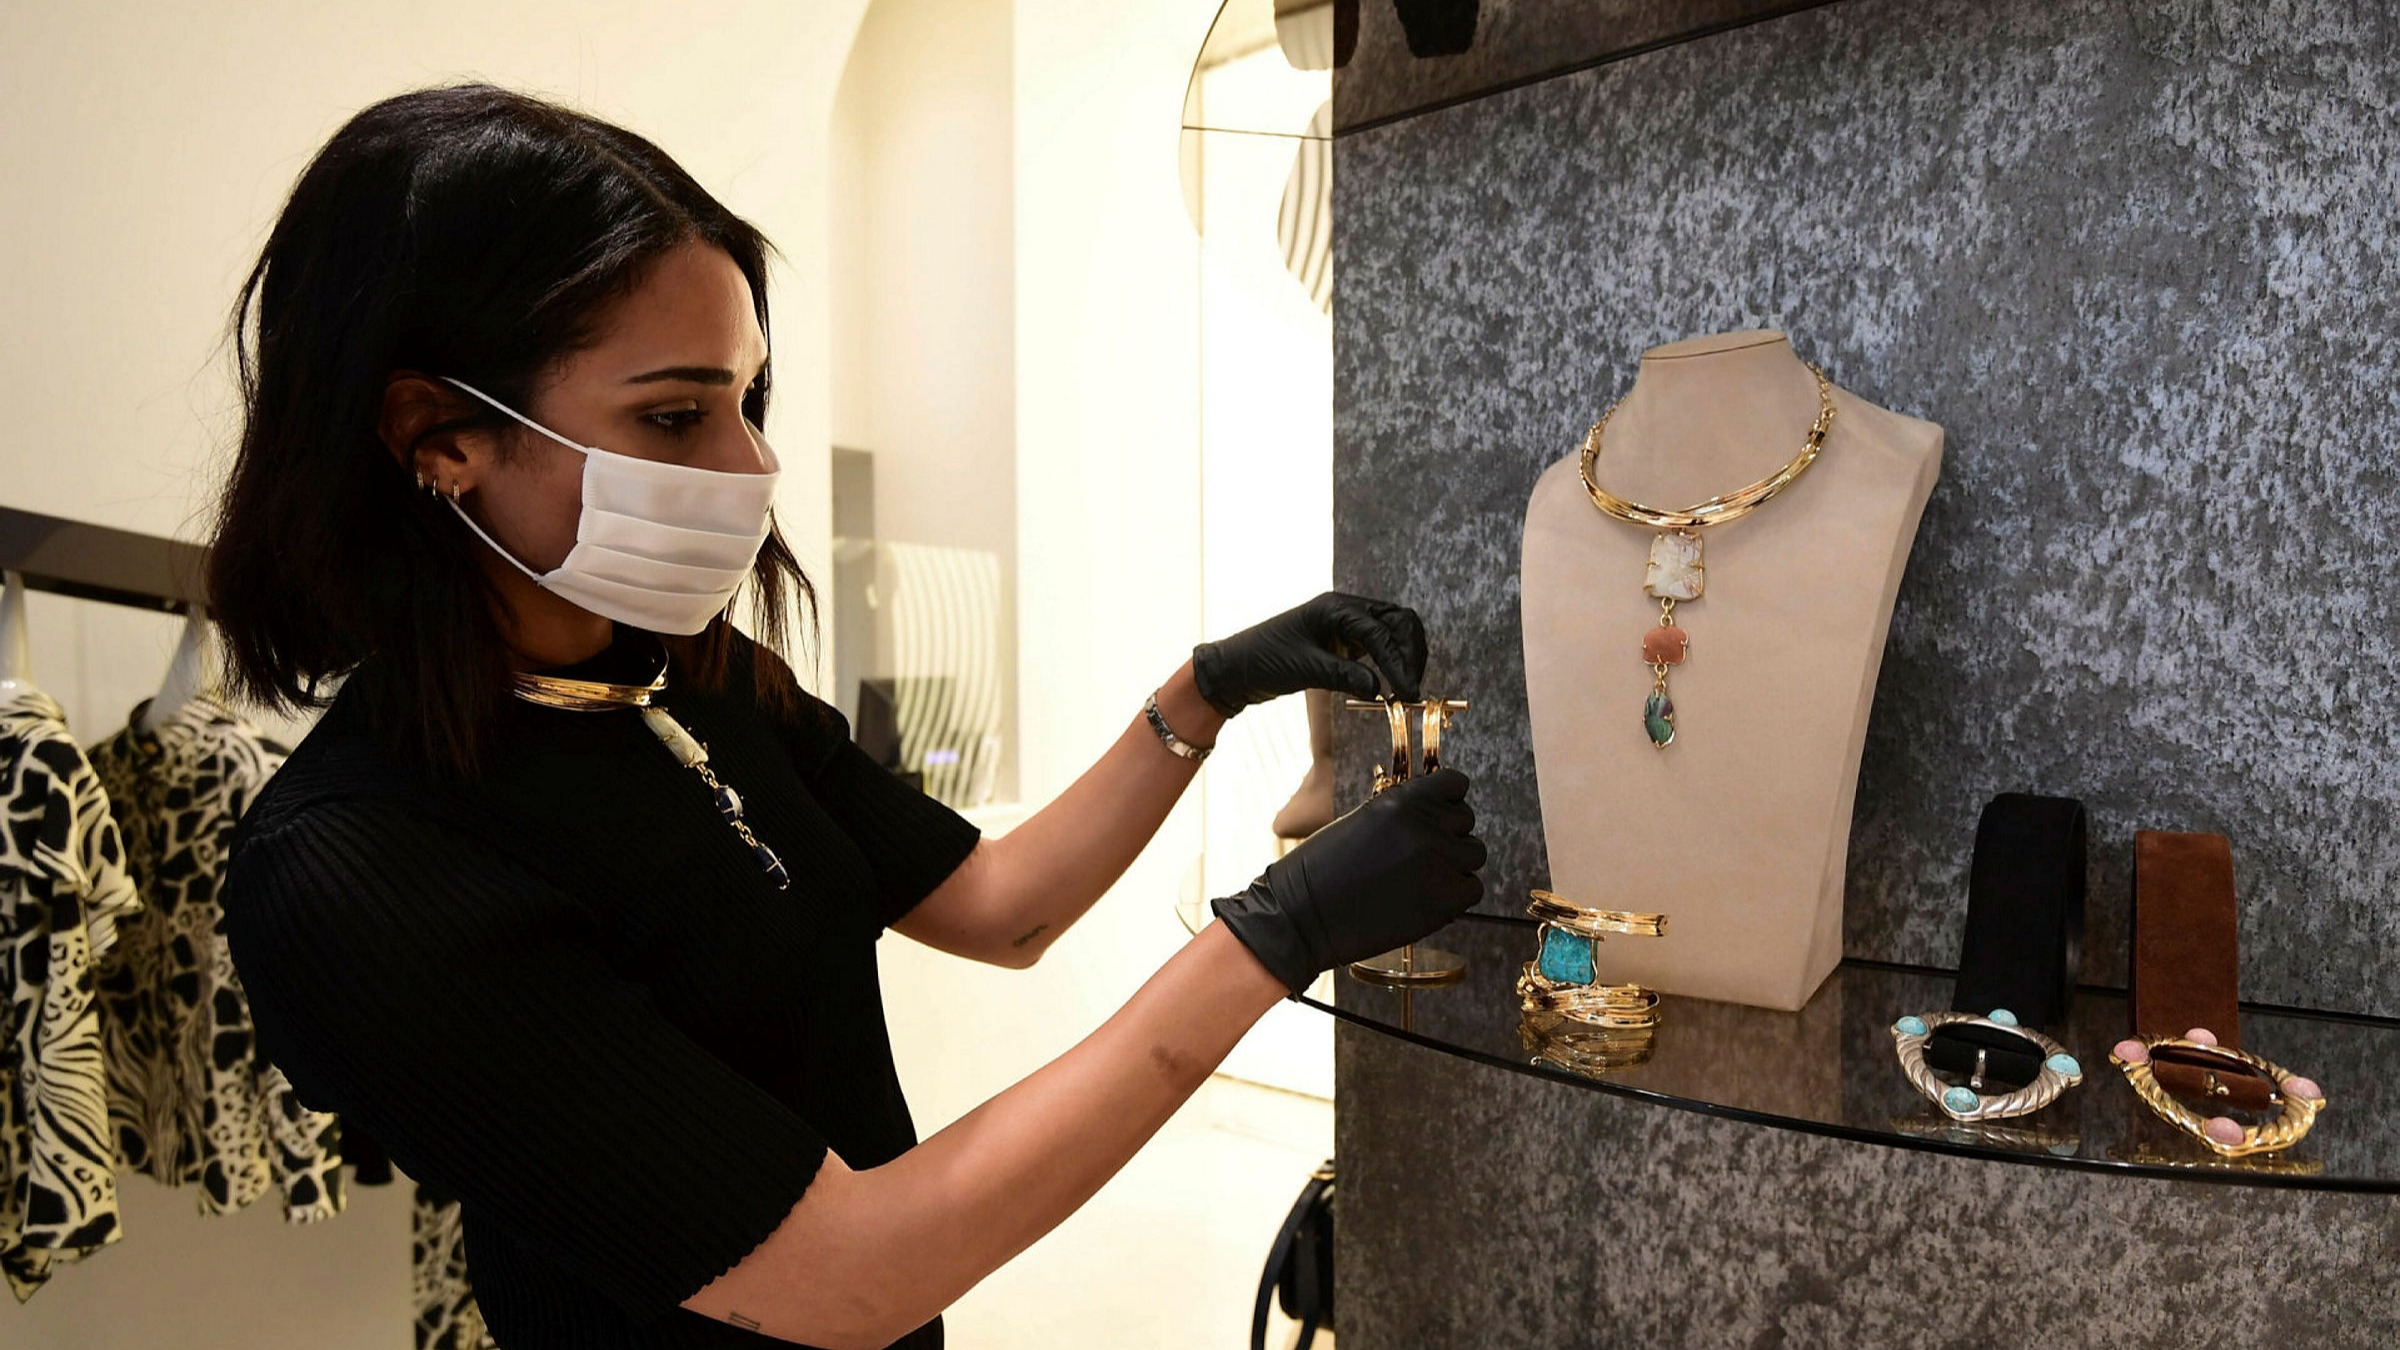 Europe S Luxury Goods Capitals Reopen To New Reality Financial Times